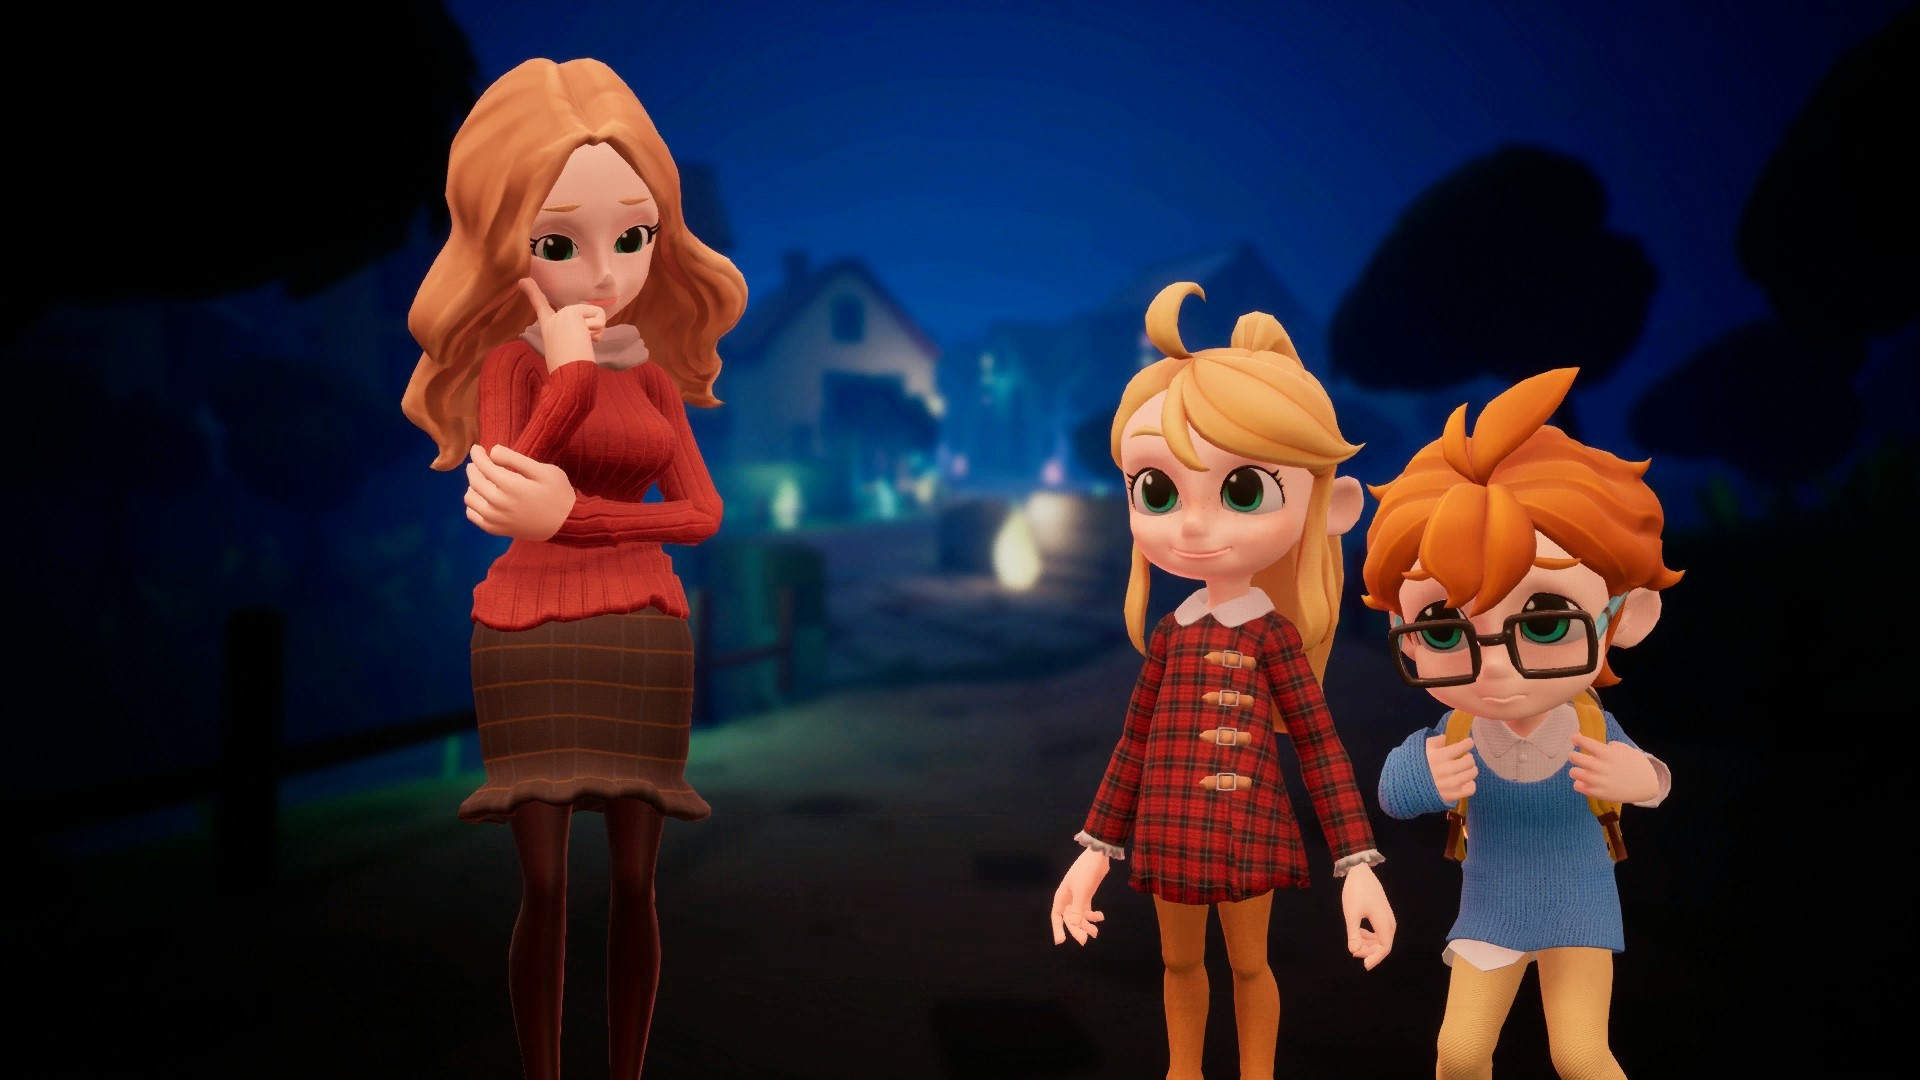 Destiny Connect: Tick-Tock Travelers, PS4, PlayStation 4, US, North America, pre-order, release date, gameplay, features, price, NIS America